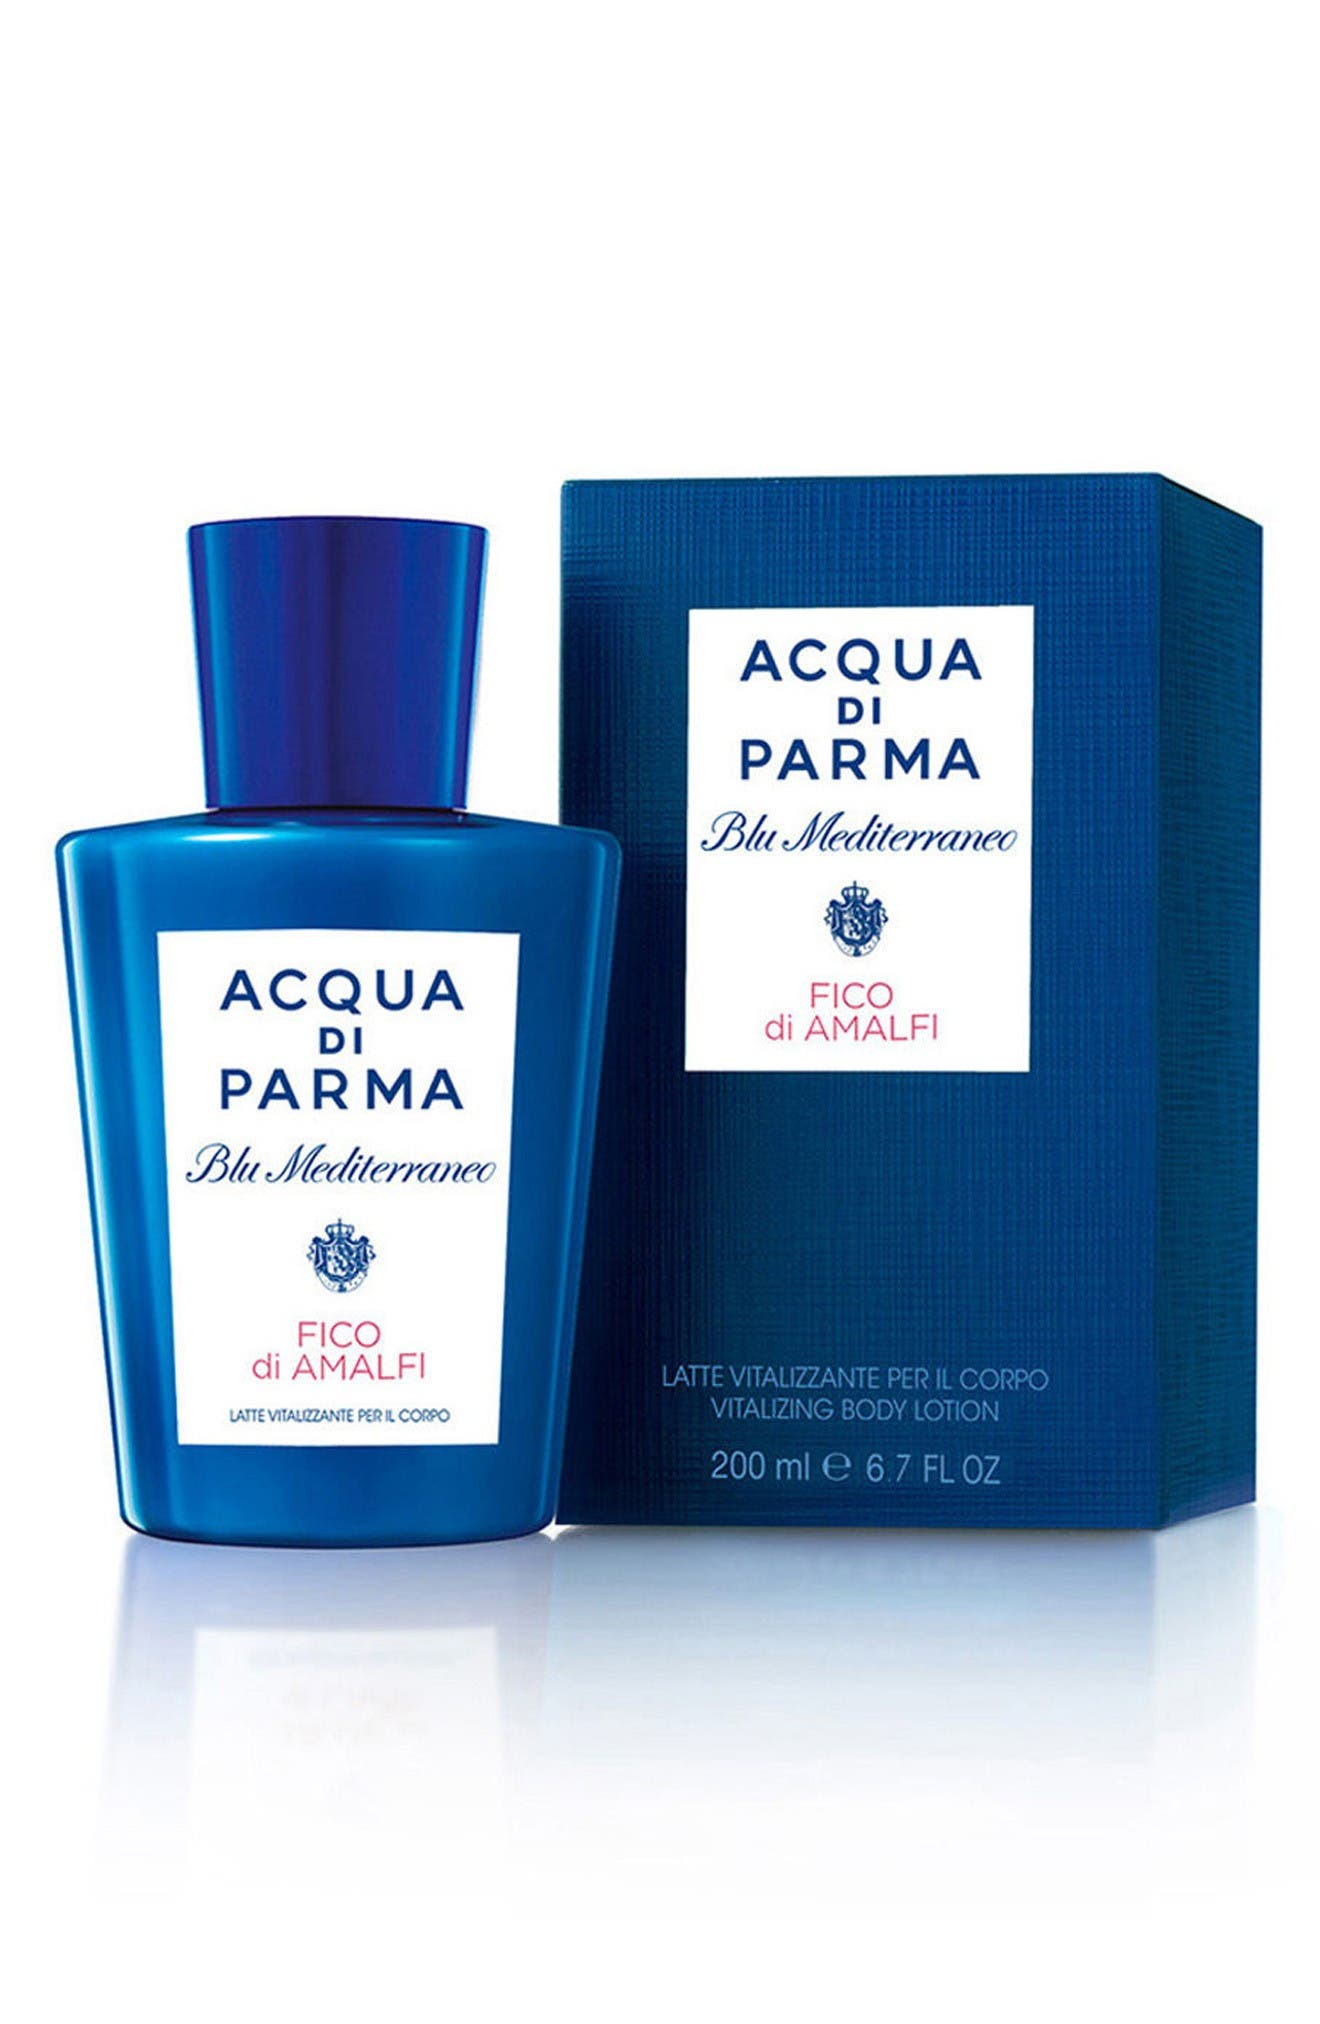 Alternate Image 2  - Acqua di Parma 'Blu Mediterraneo' Fico di Amalfi Body Lotion